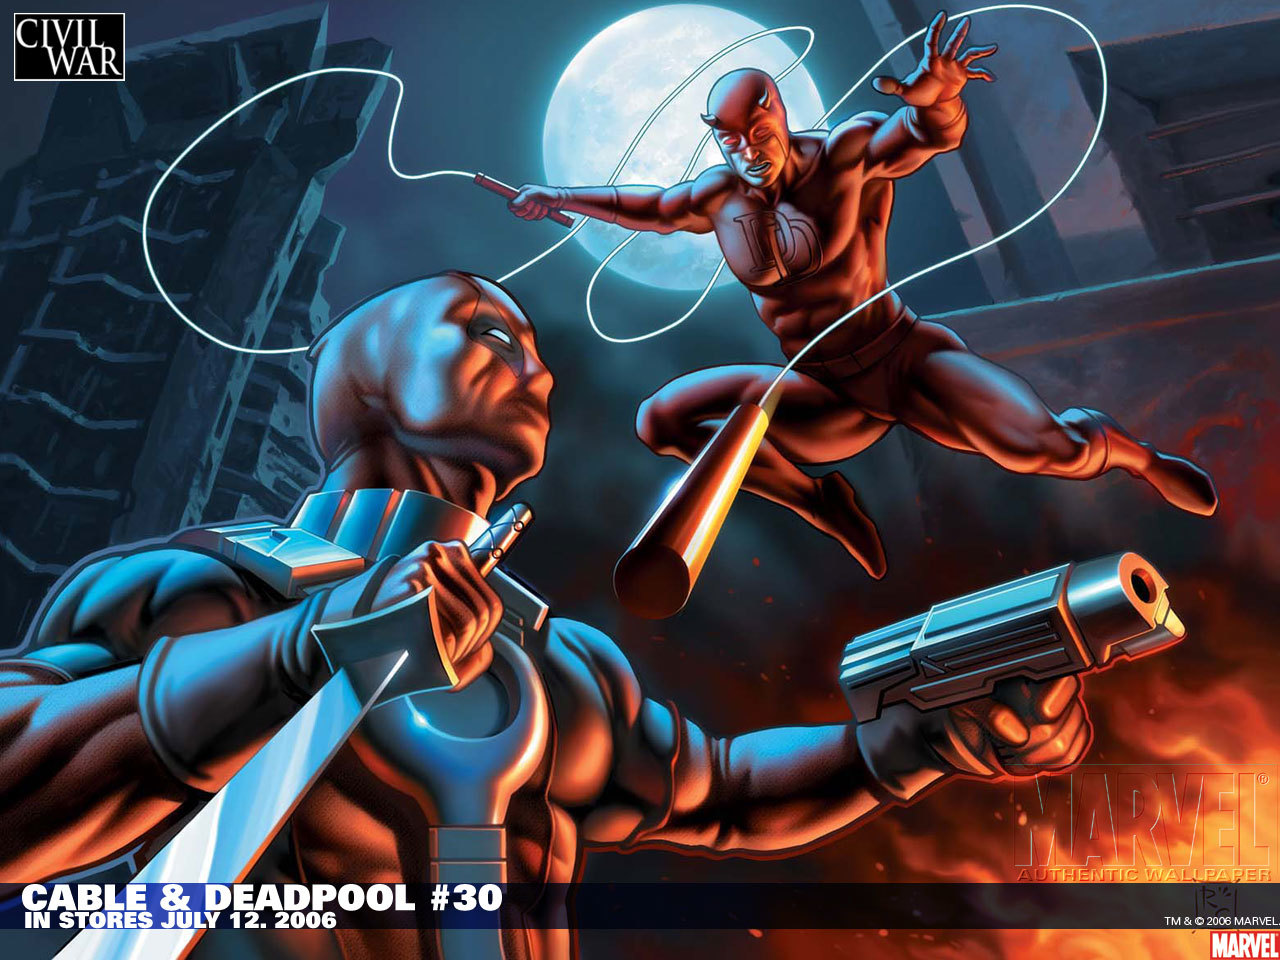 Wilson daredevil marvel comics HD Wallpaper